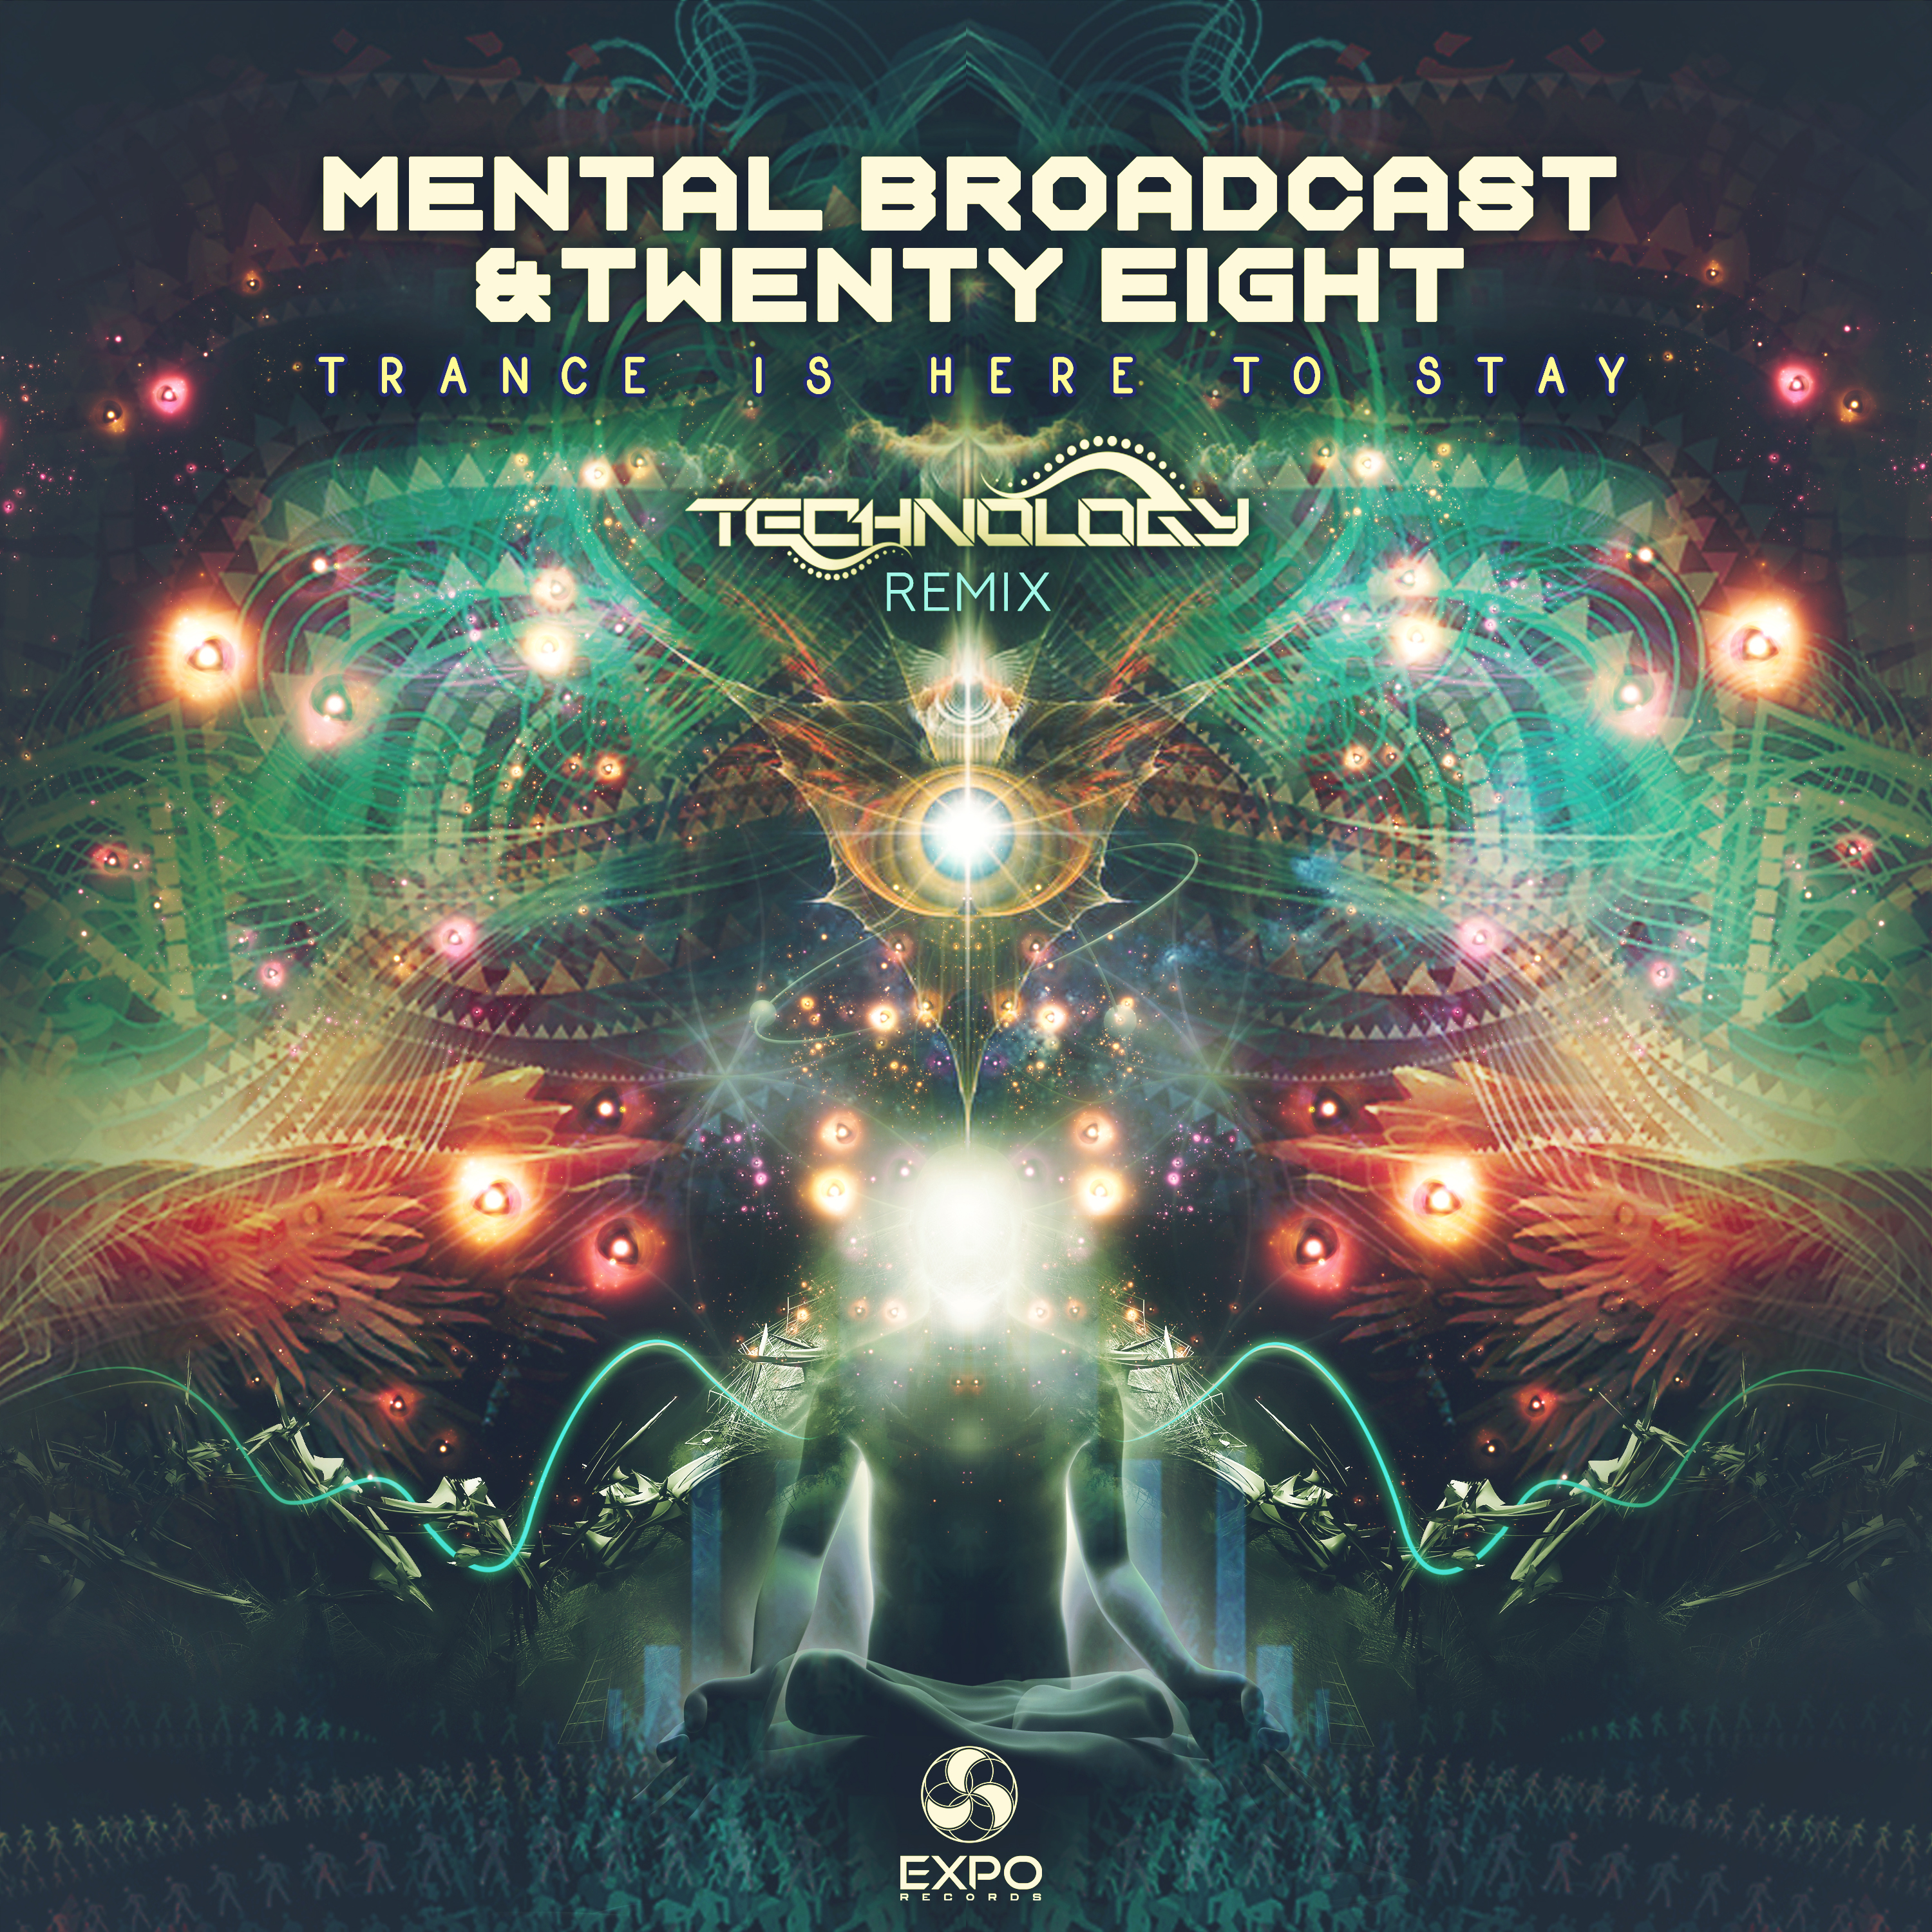 mental broadcast - trance is here to stay (Technology remix)